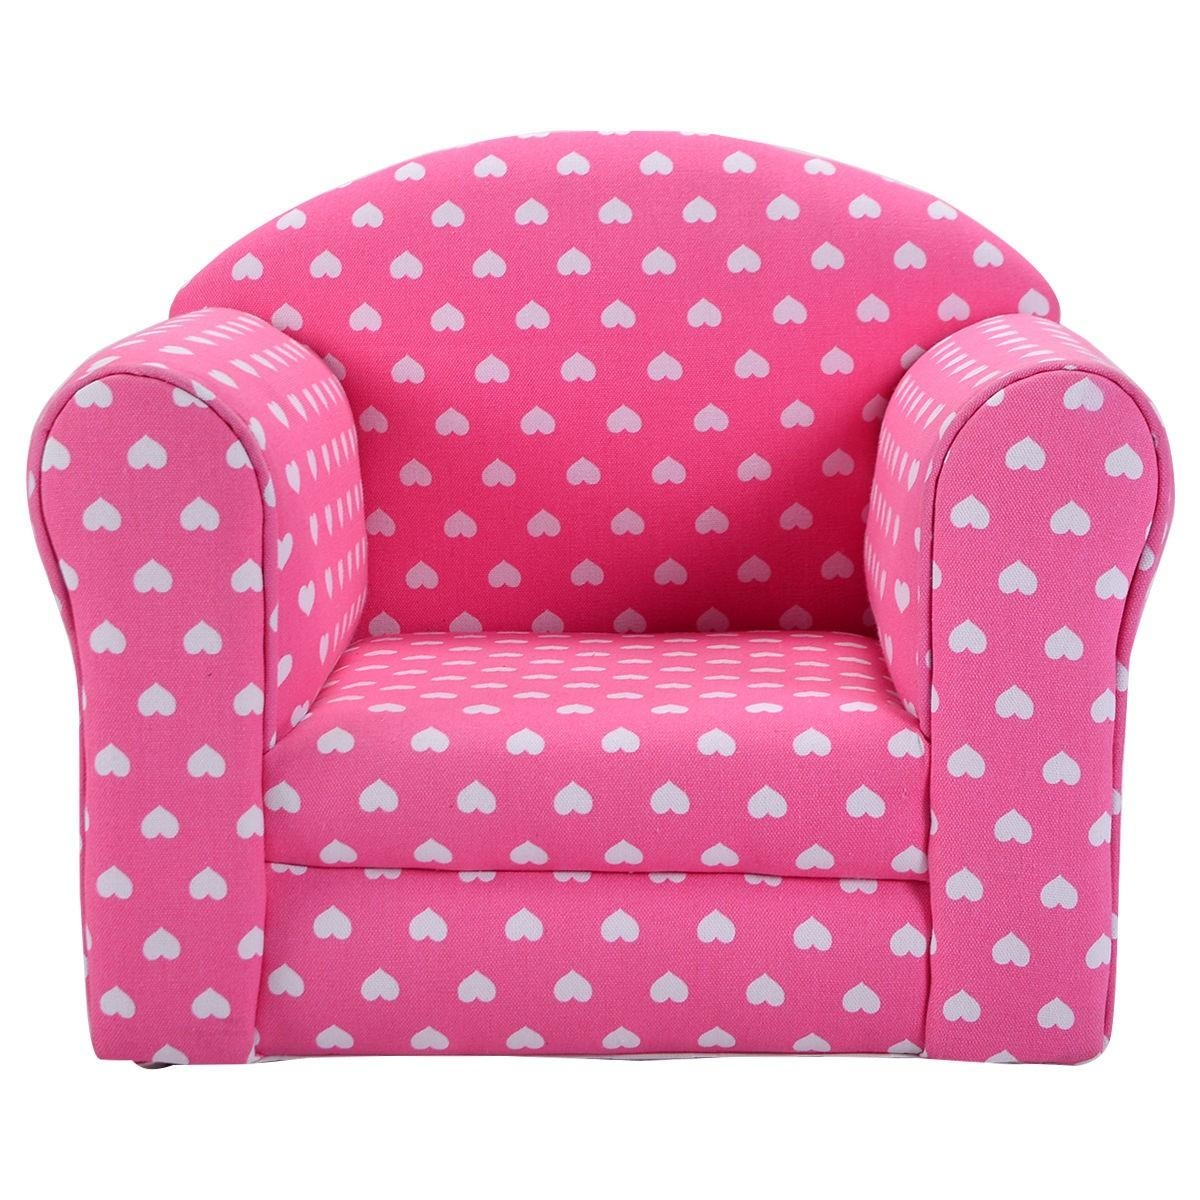 Sofas Center : Sofa Chair For Toddler Thesofa Kid Best Decoration Inside Toddler Sofa Chairs (Image 20 of 20)